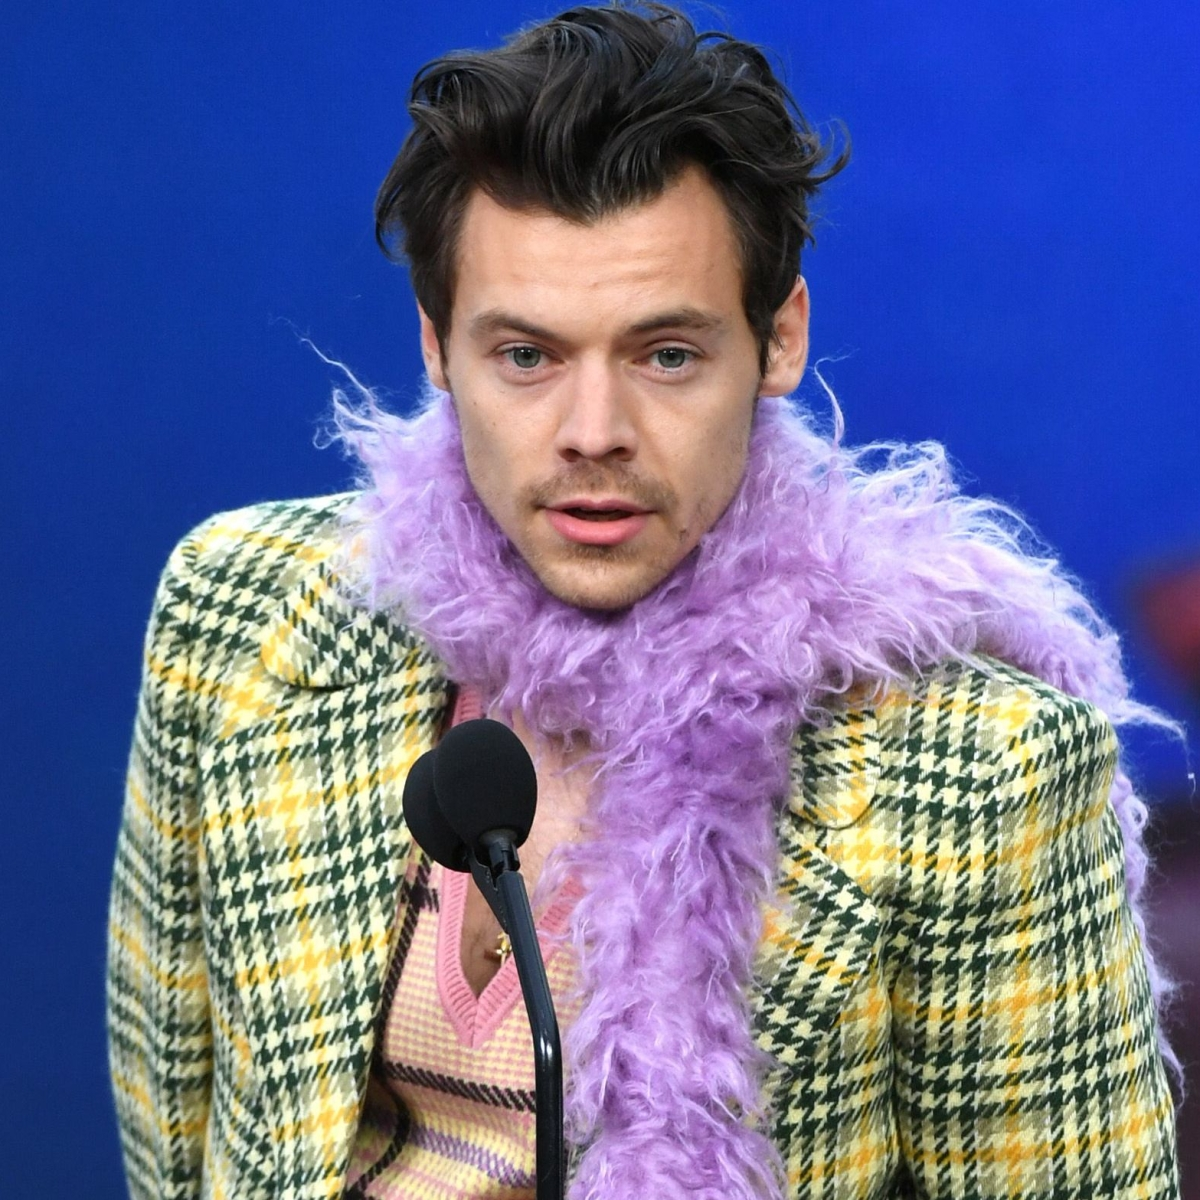 Watch: Harry Styles drops the F-bomb during Grammys 2021 acceptance speech